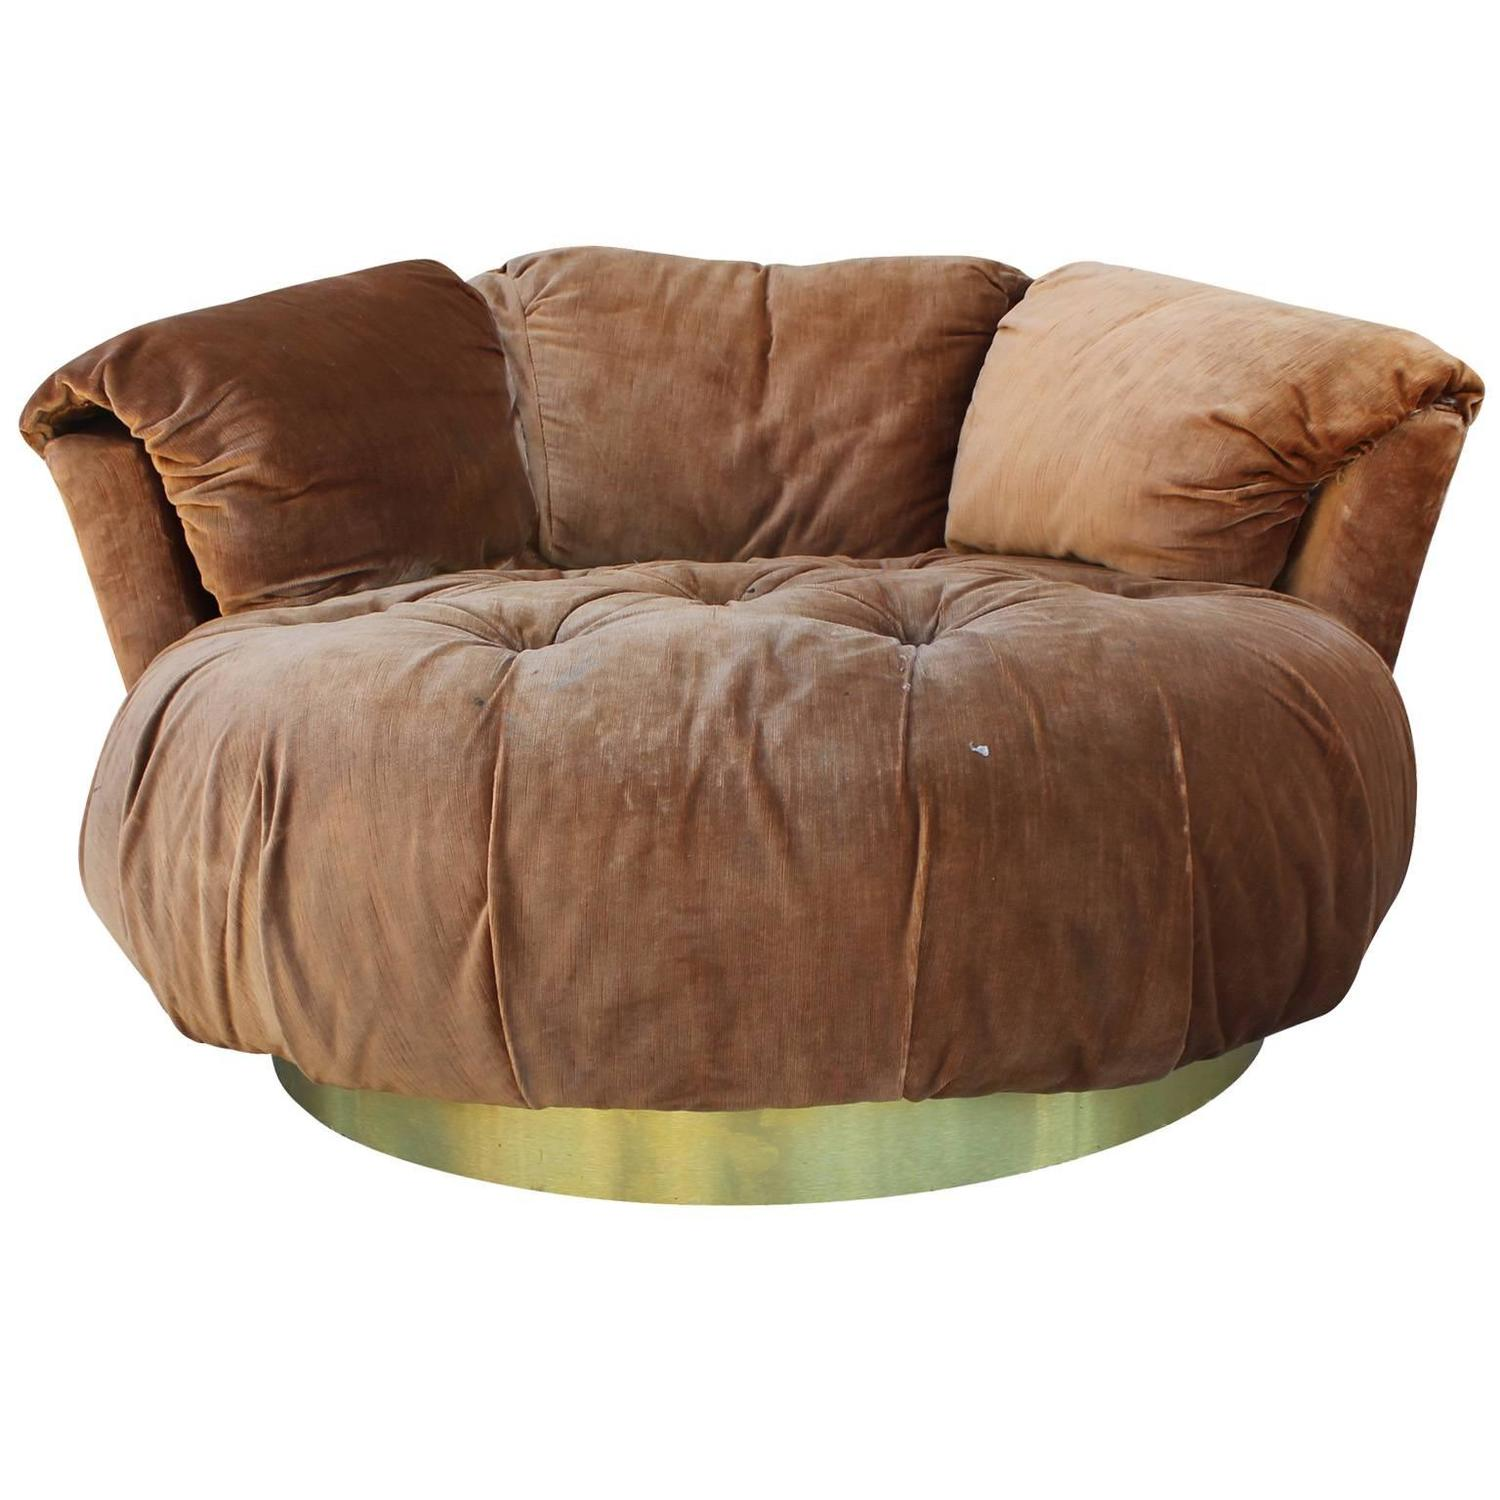 Plush Tufted Circle Lounge Chair with Brass Base at 1stdibs